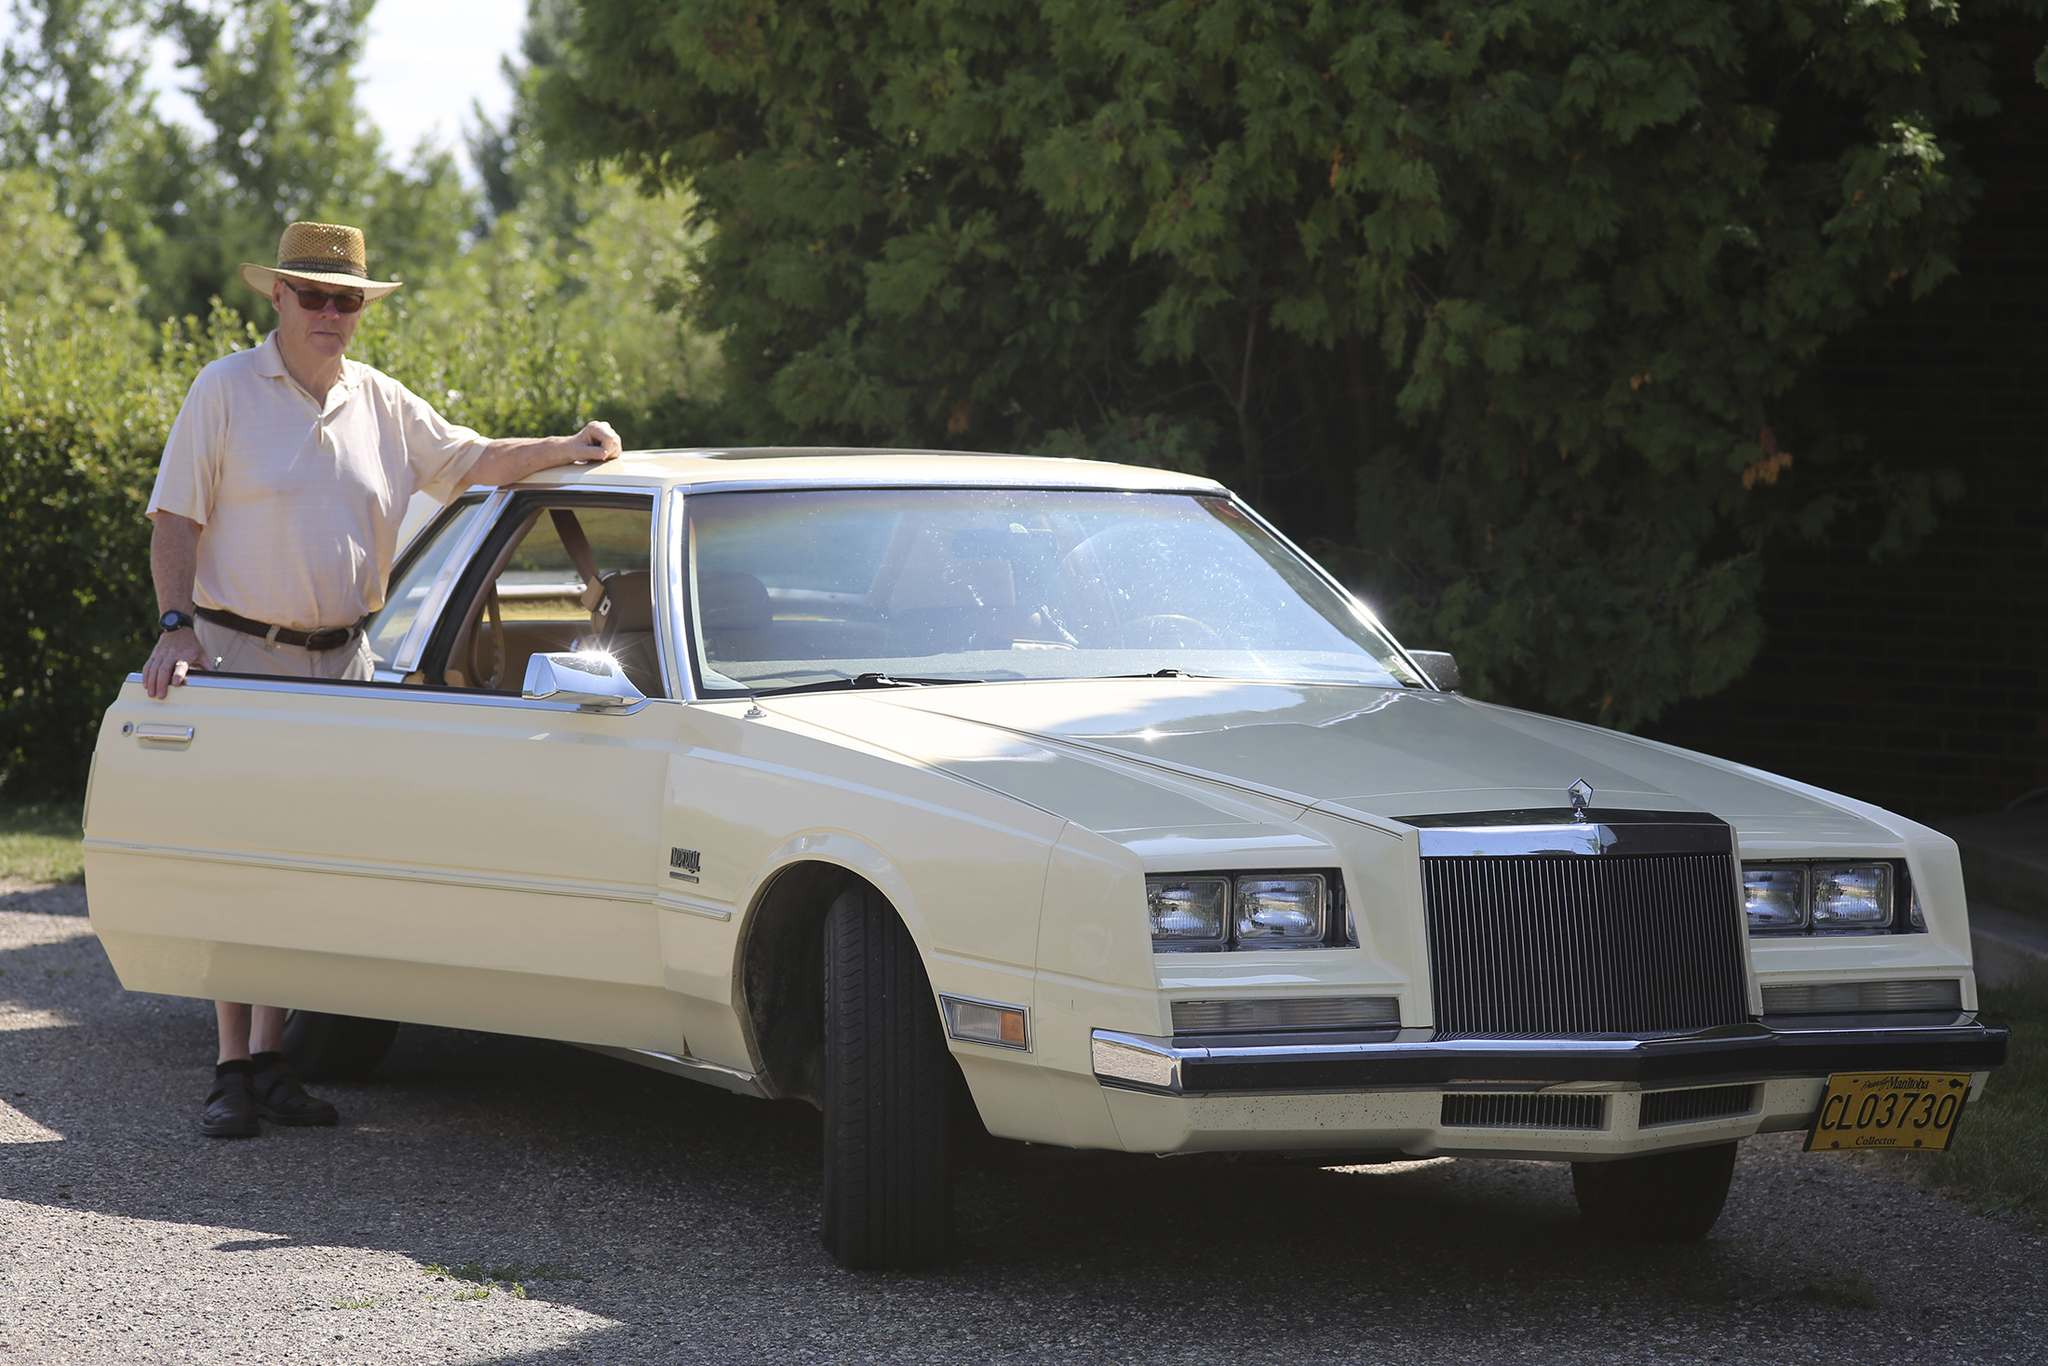 Reg Atkinson showcases his 1981 Chrysler Imperial on Monday. The former Reeve for the Rural Municipality of Cornwallis said he plans to give this classic car to his grandson Ozy once he is of age.  (Kyle Darbyson/The Brandon Sun)